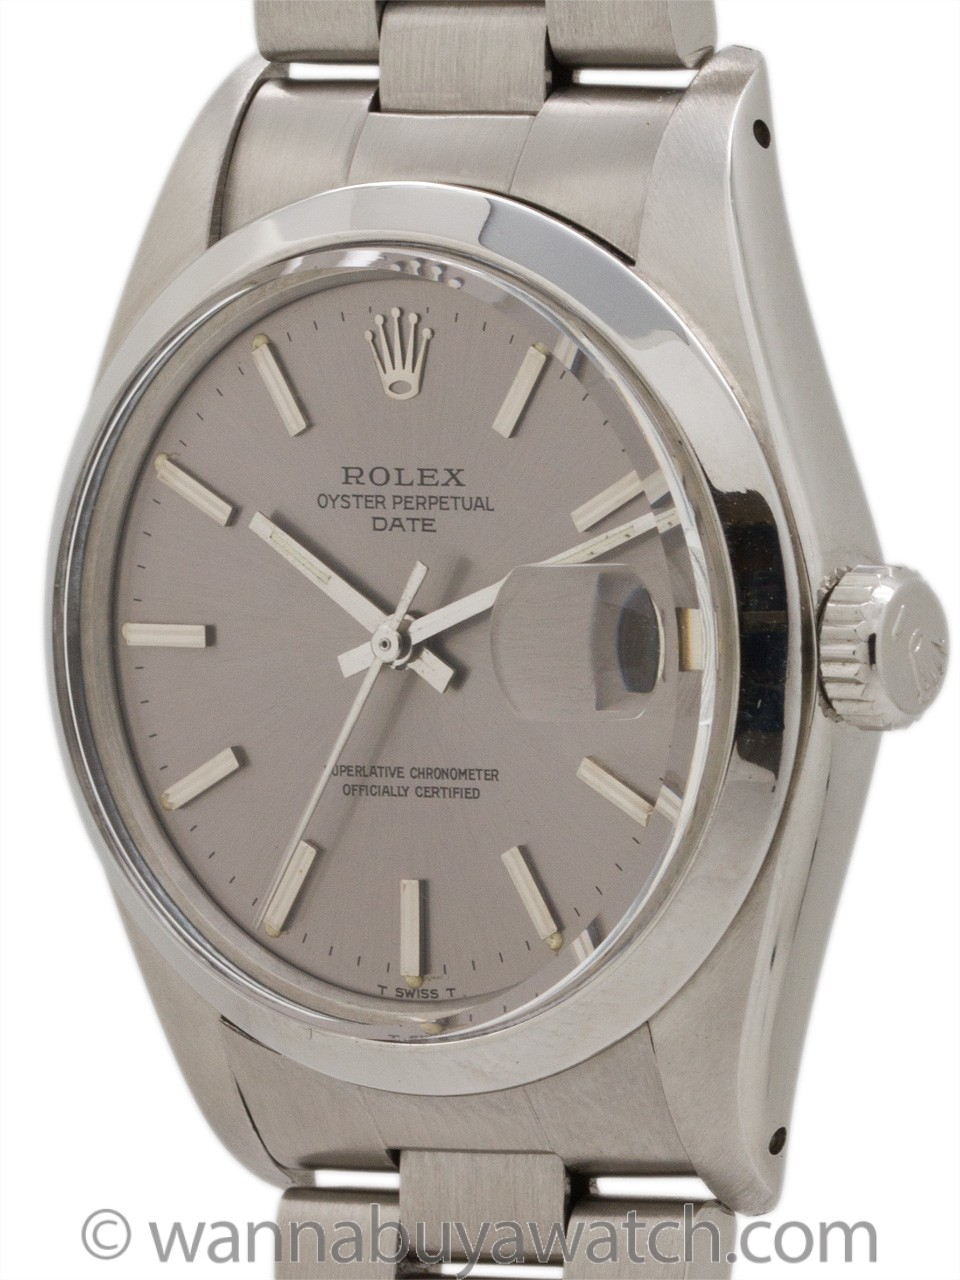 Rolex Oyster Perpetual Date ref 1500 Gray Dial circa 1978